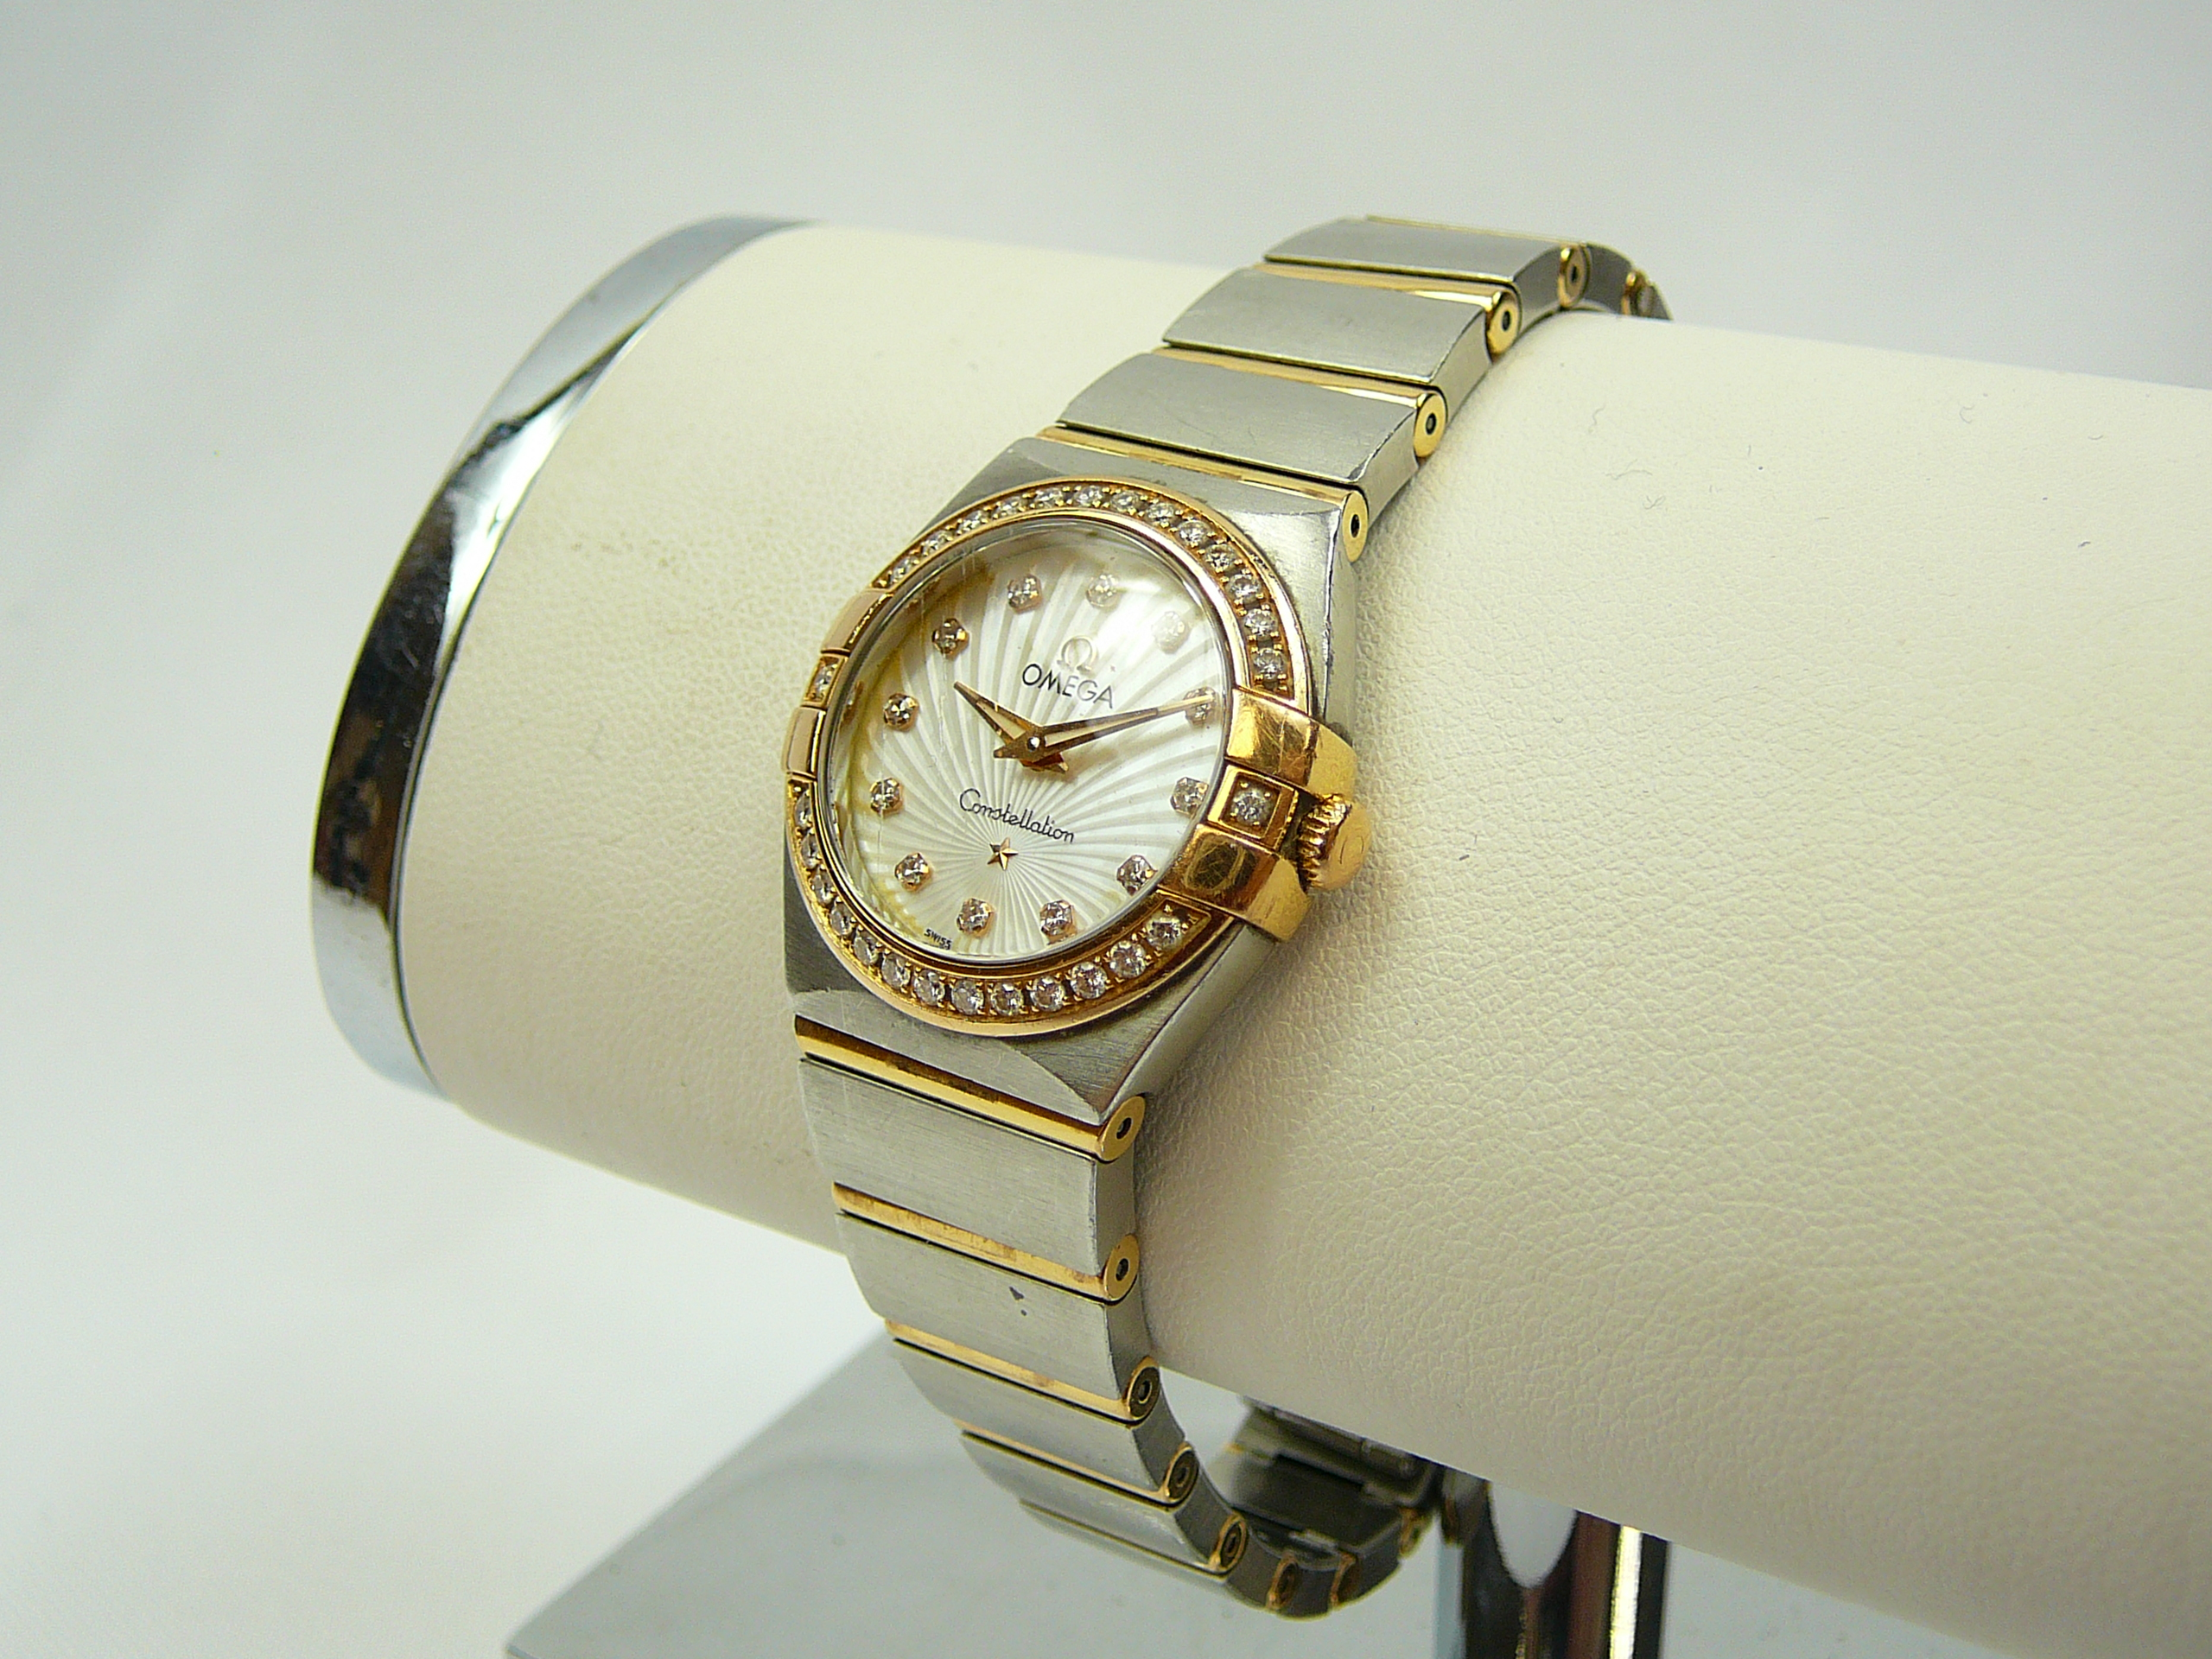 Ladies Omega Wrist Watch - Image 2 of 3